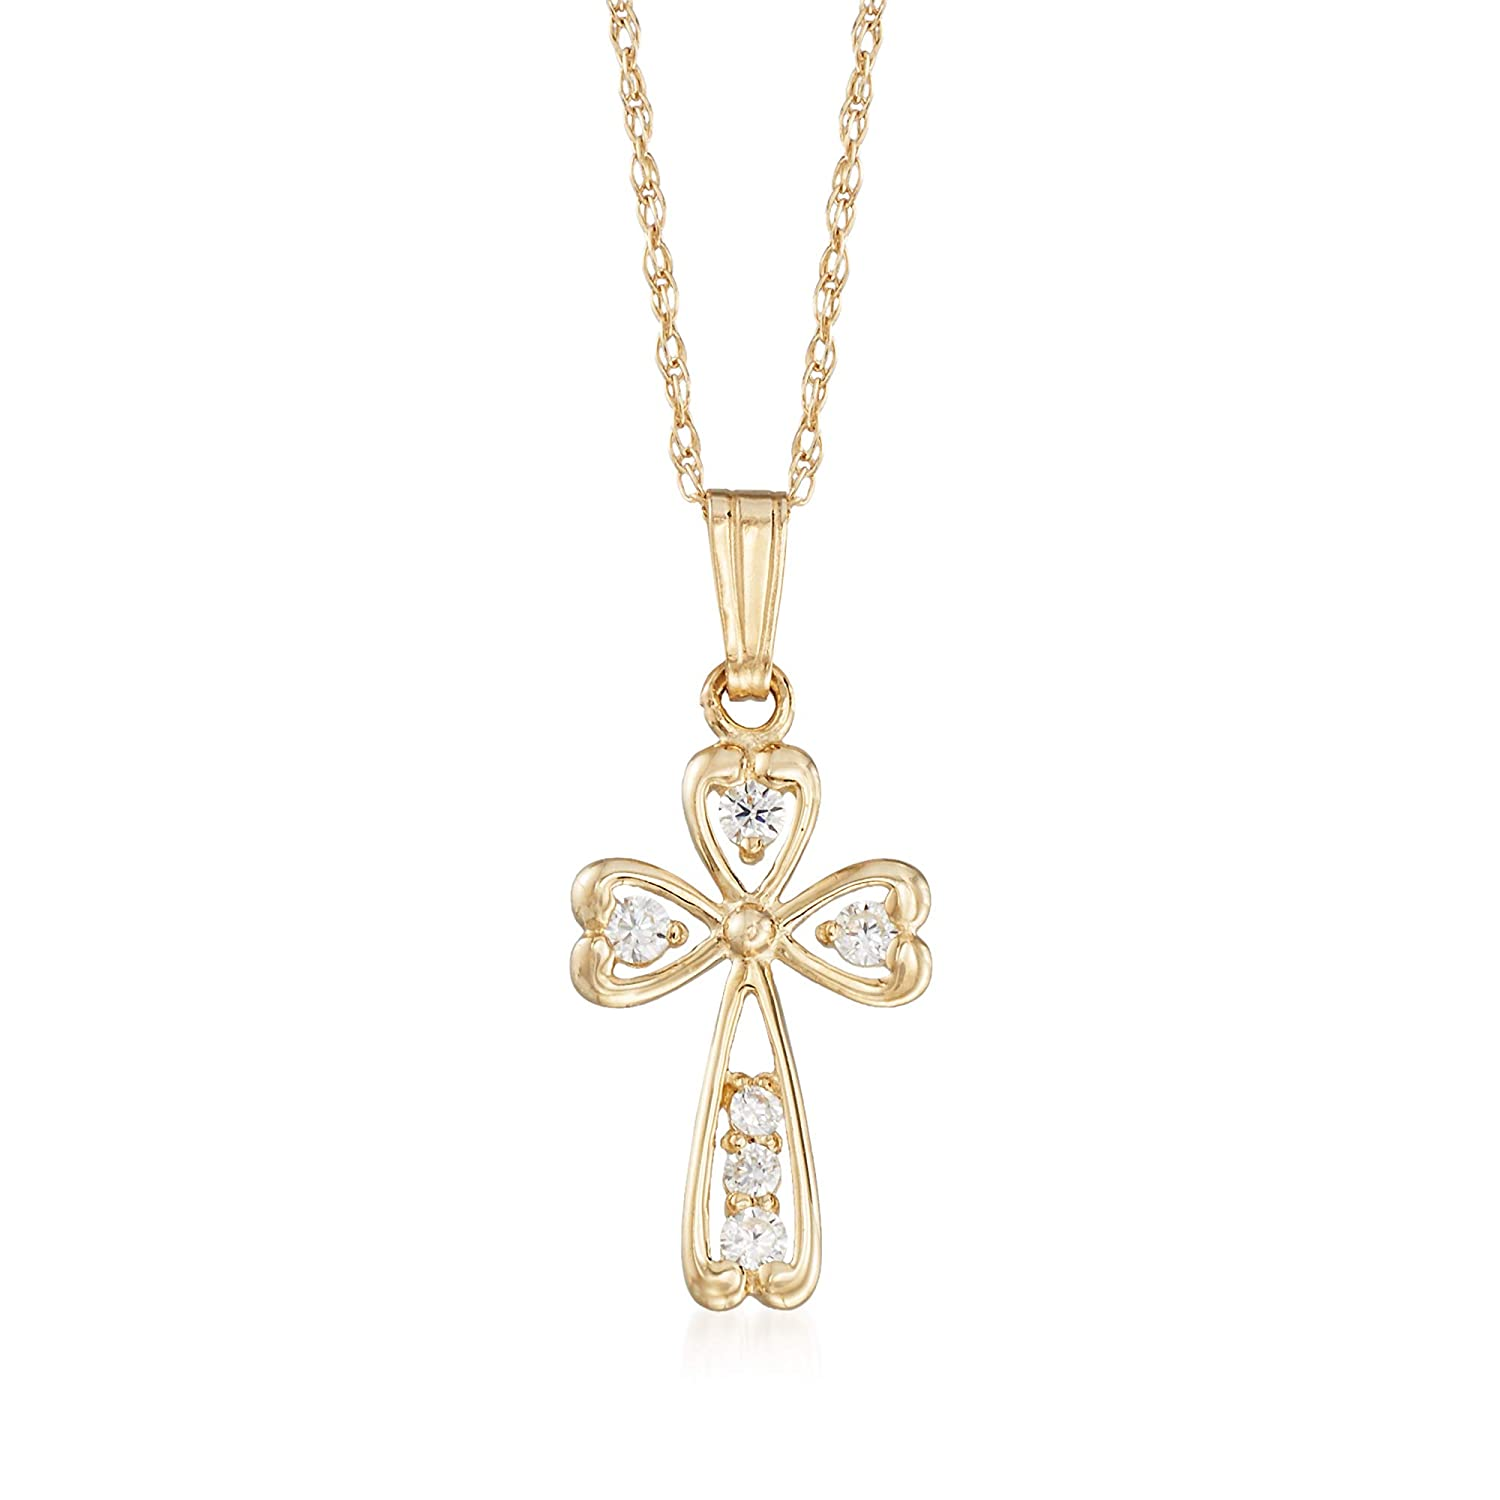 t.w CZ Cross Pendant Necklace in 14kt Yellow Gold Ross-Simons Childs .18 ct